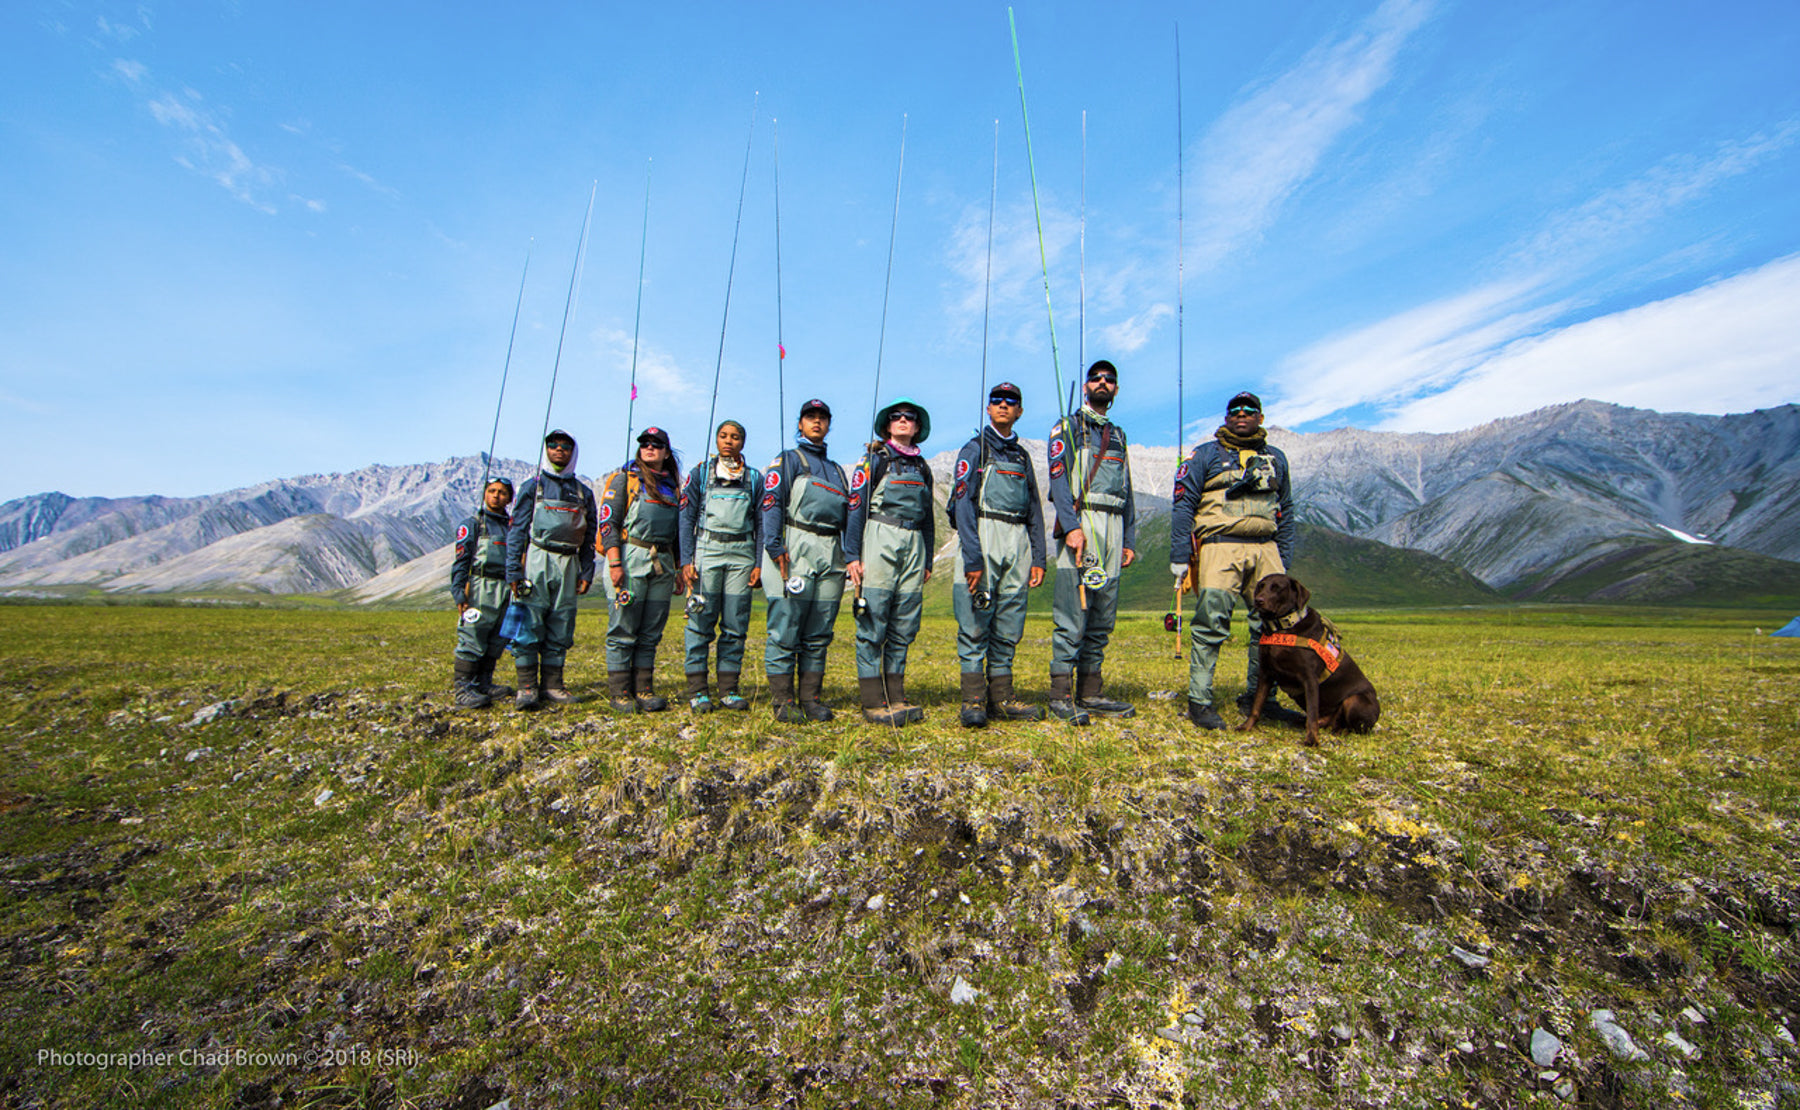 Soul River group in fly fishing gear pose as a group in front of the mountains.